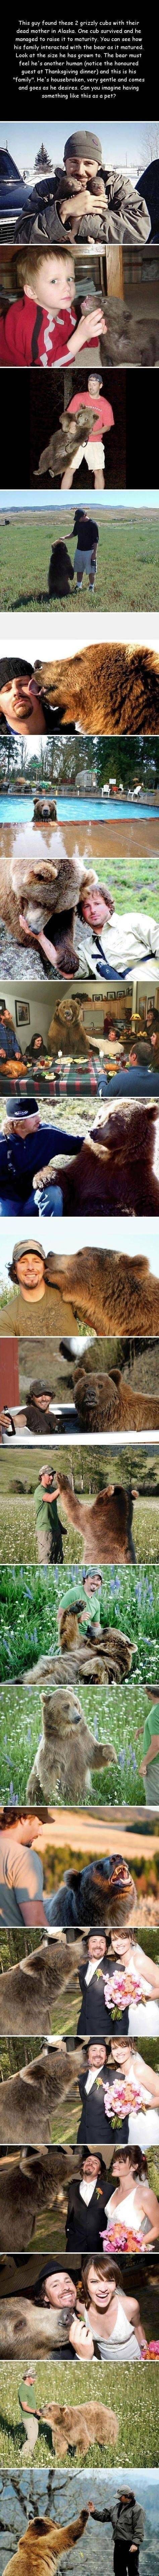 Man raises bear